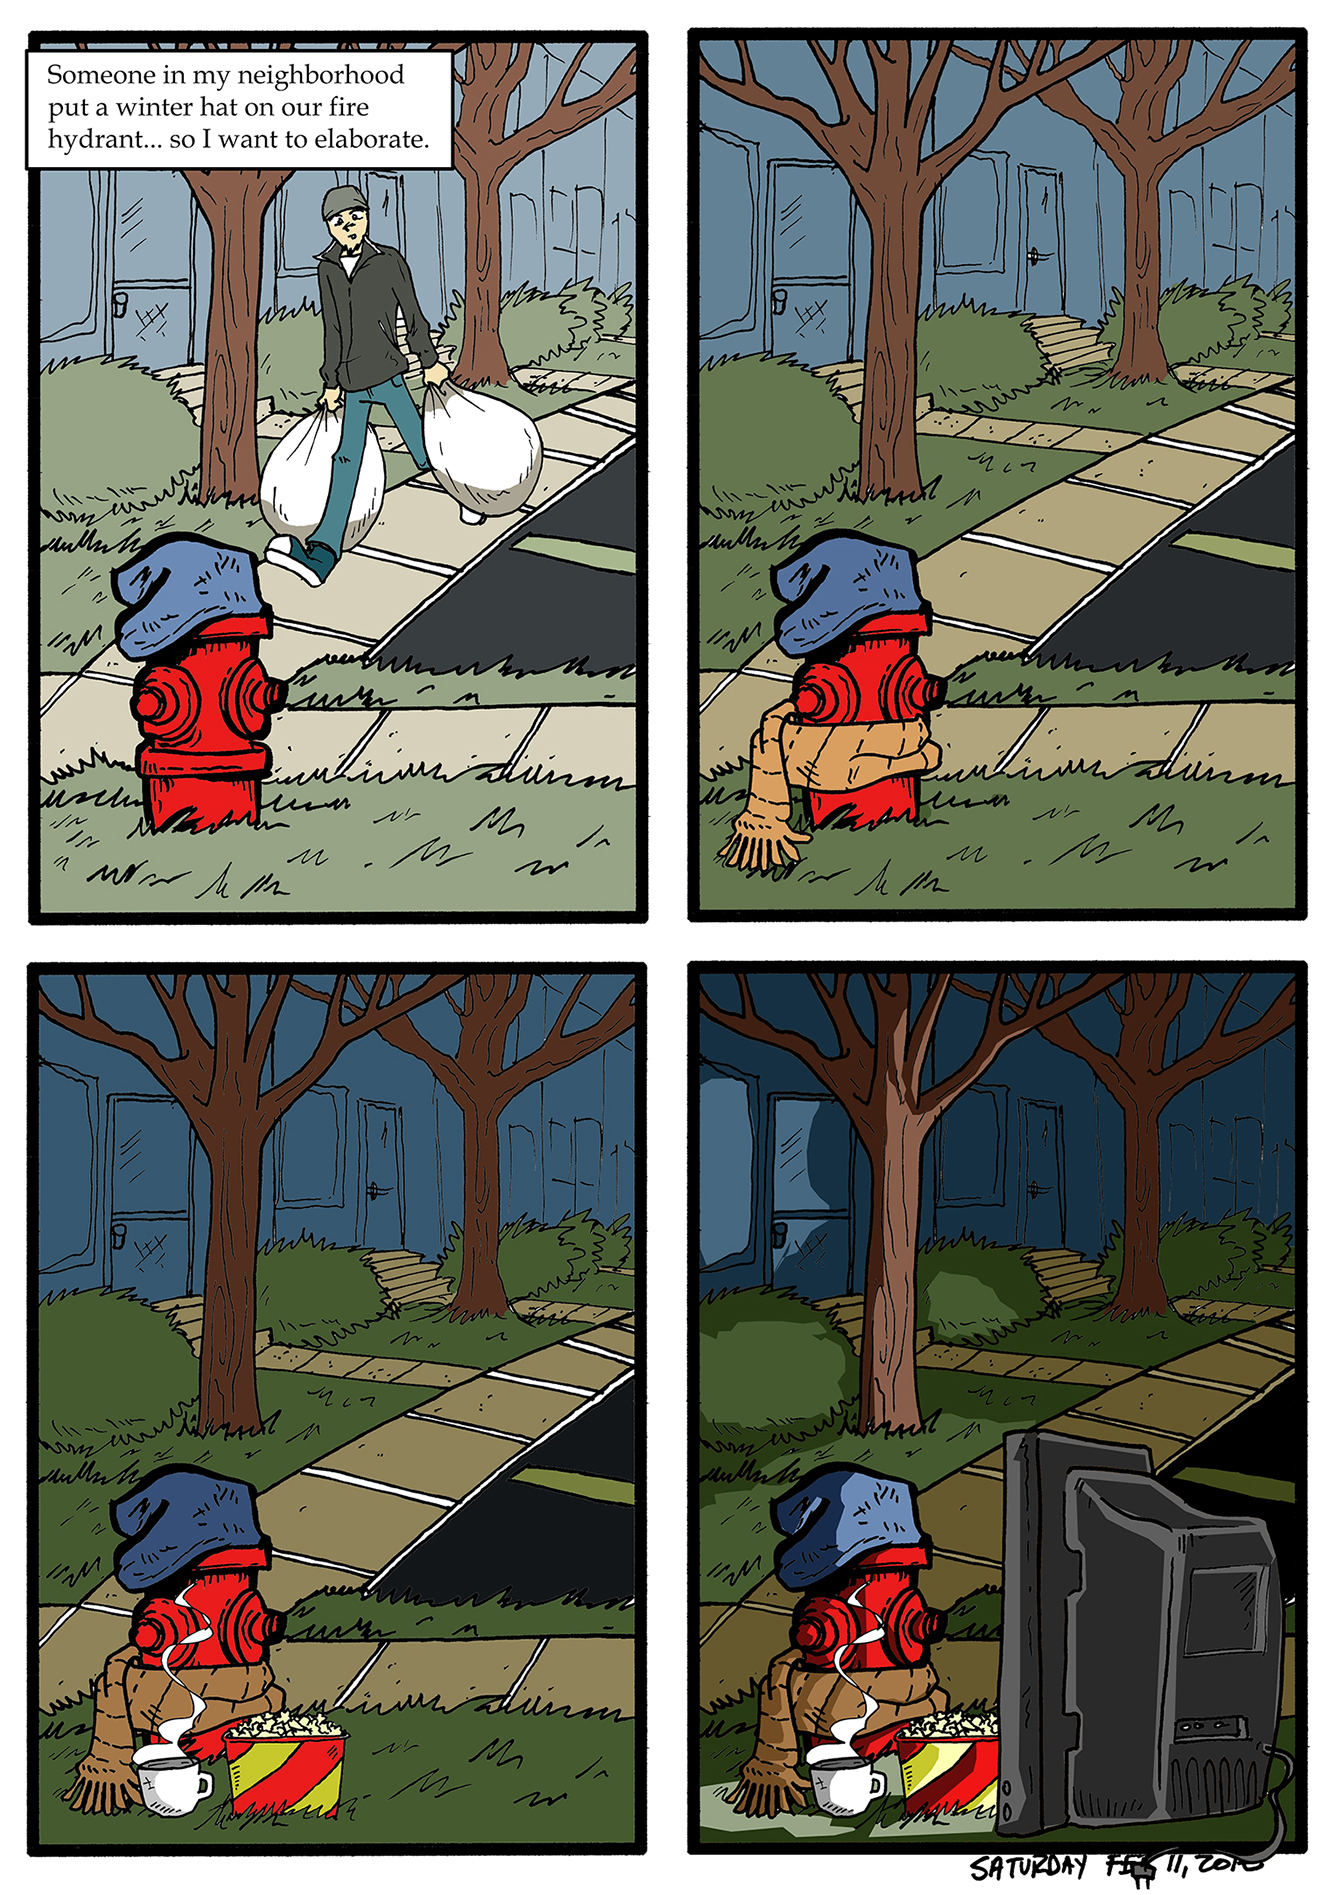 057 – Fire Hydrant